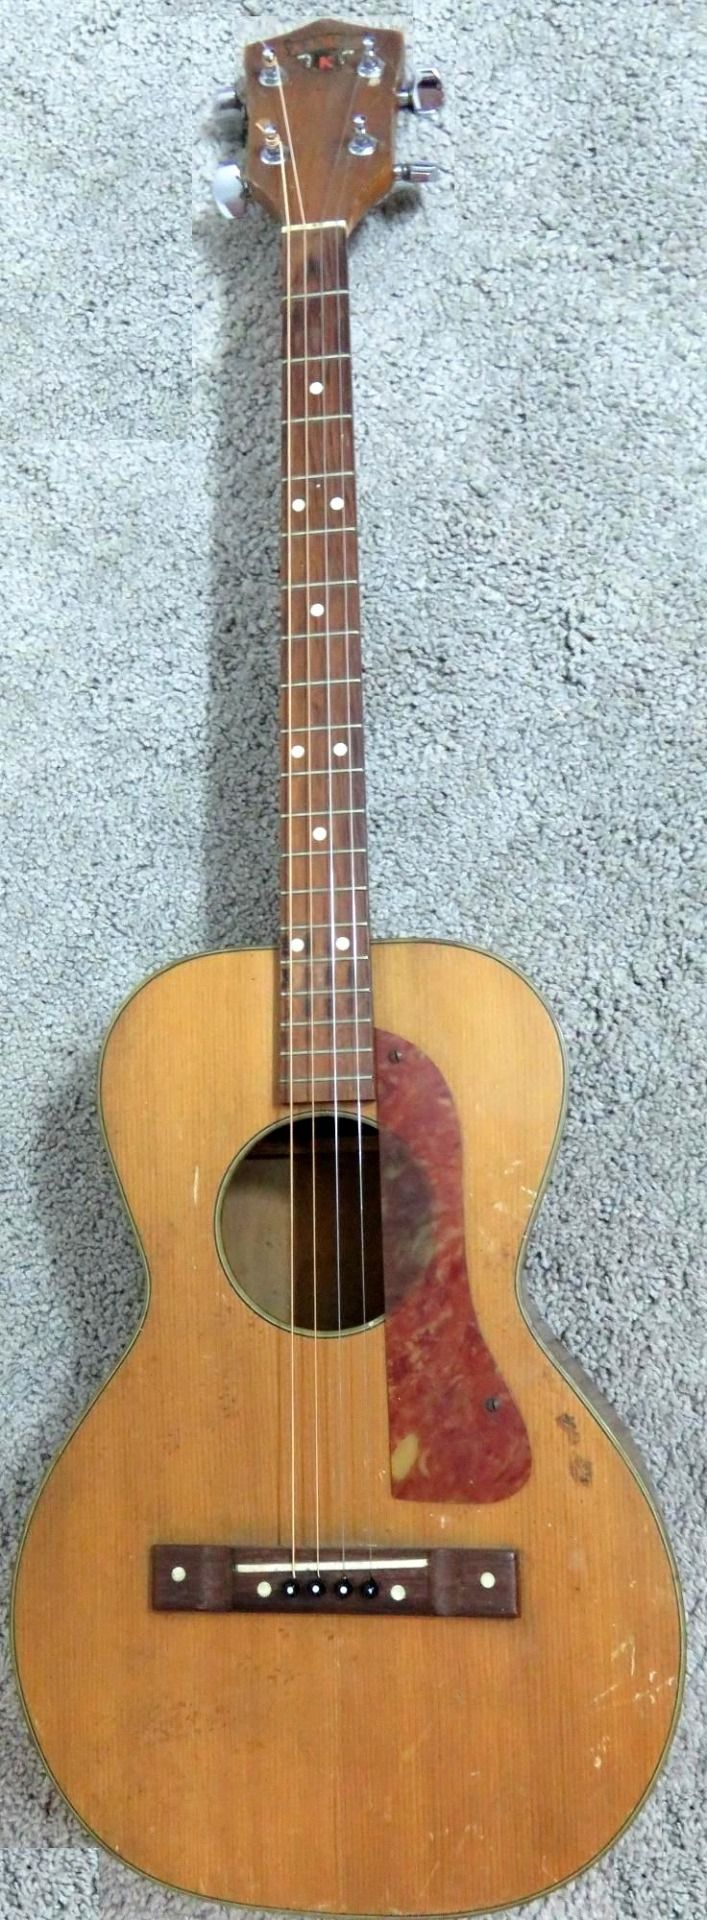 28 best ukuleles baritone 20th c images on pinterest the day late early kamiko k baritone ukulele made by kay and with more than a hint of tenor guitar lardys ukulele of the day 2017 hexwebz Choice Image